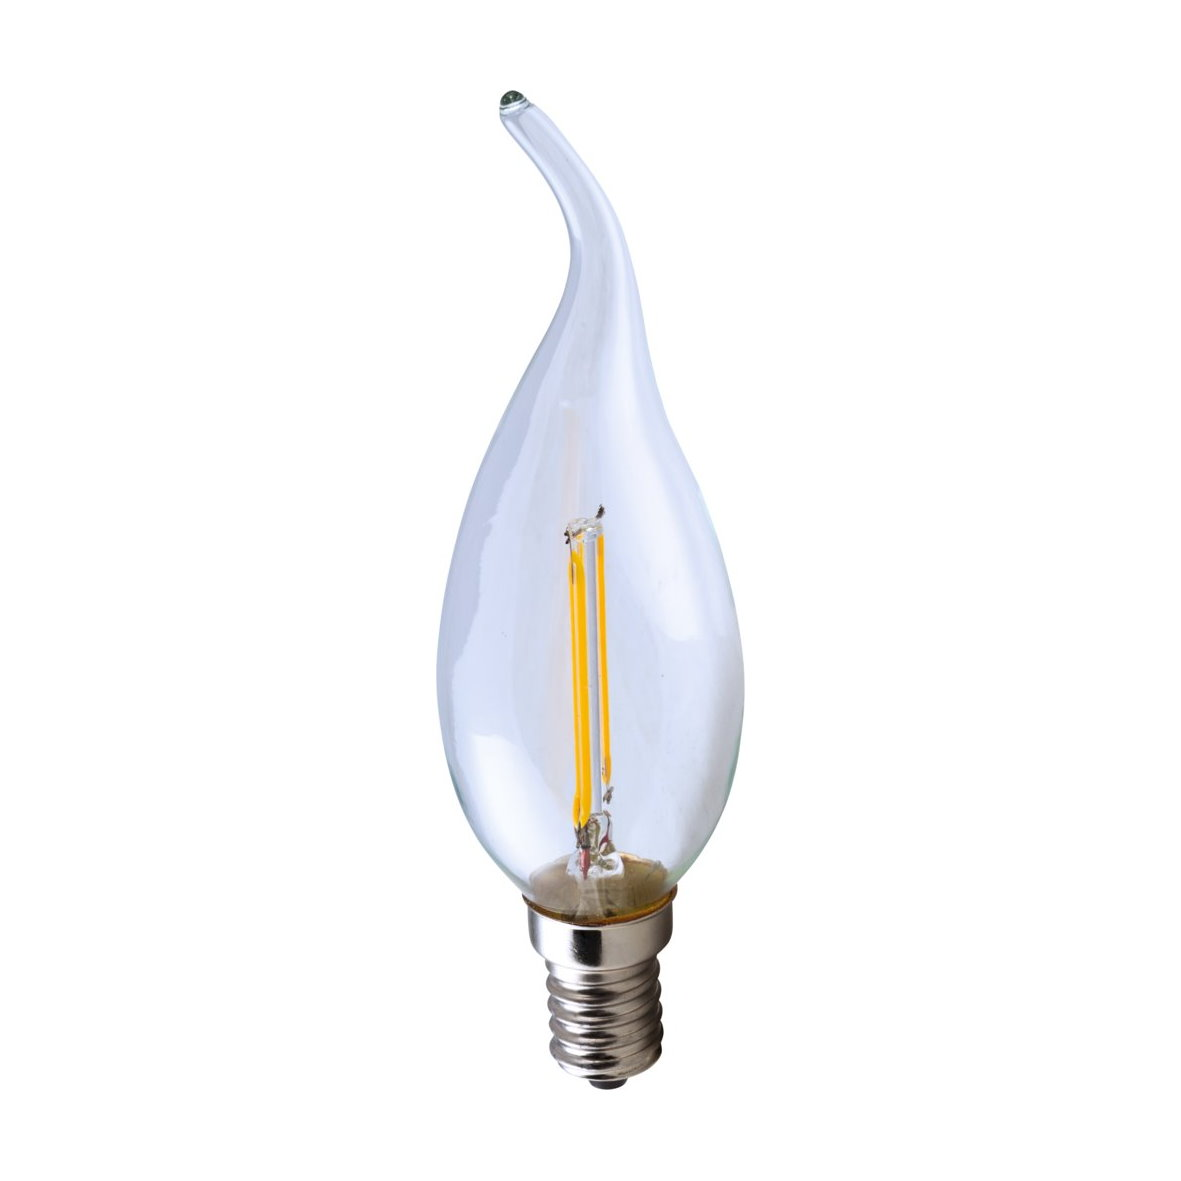 vintage cob led leuchtmittel filament retro nostalgie edison gl hbirne bulb lamp ebay. Black Bedroom Furniture Sets. Home Design Ideas